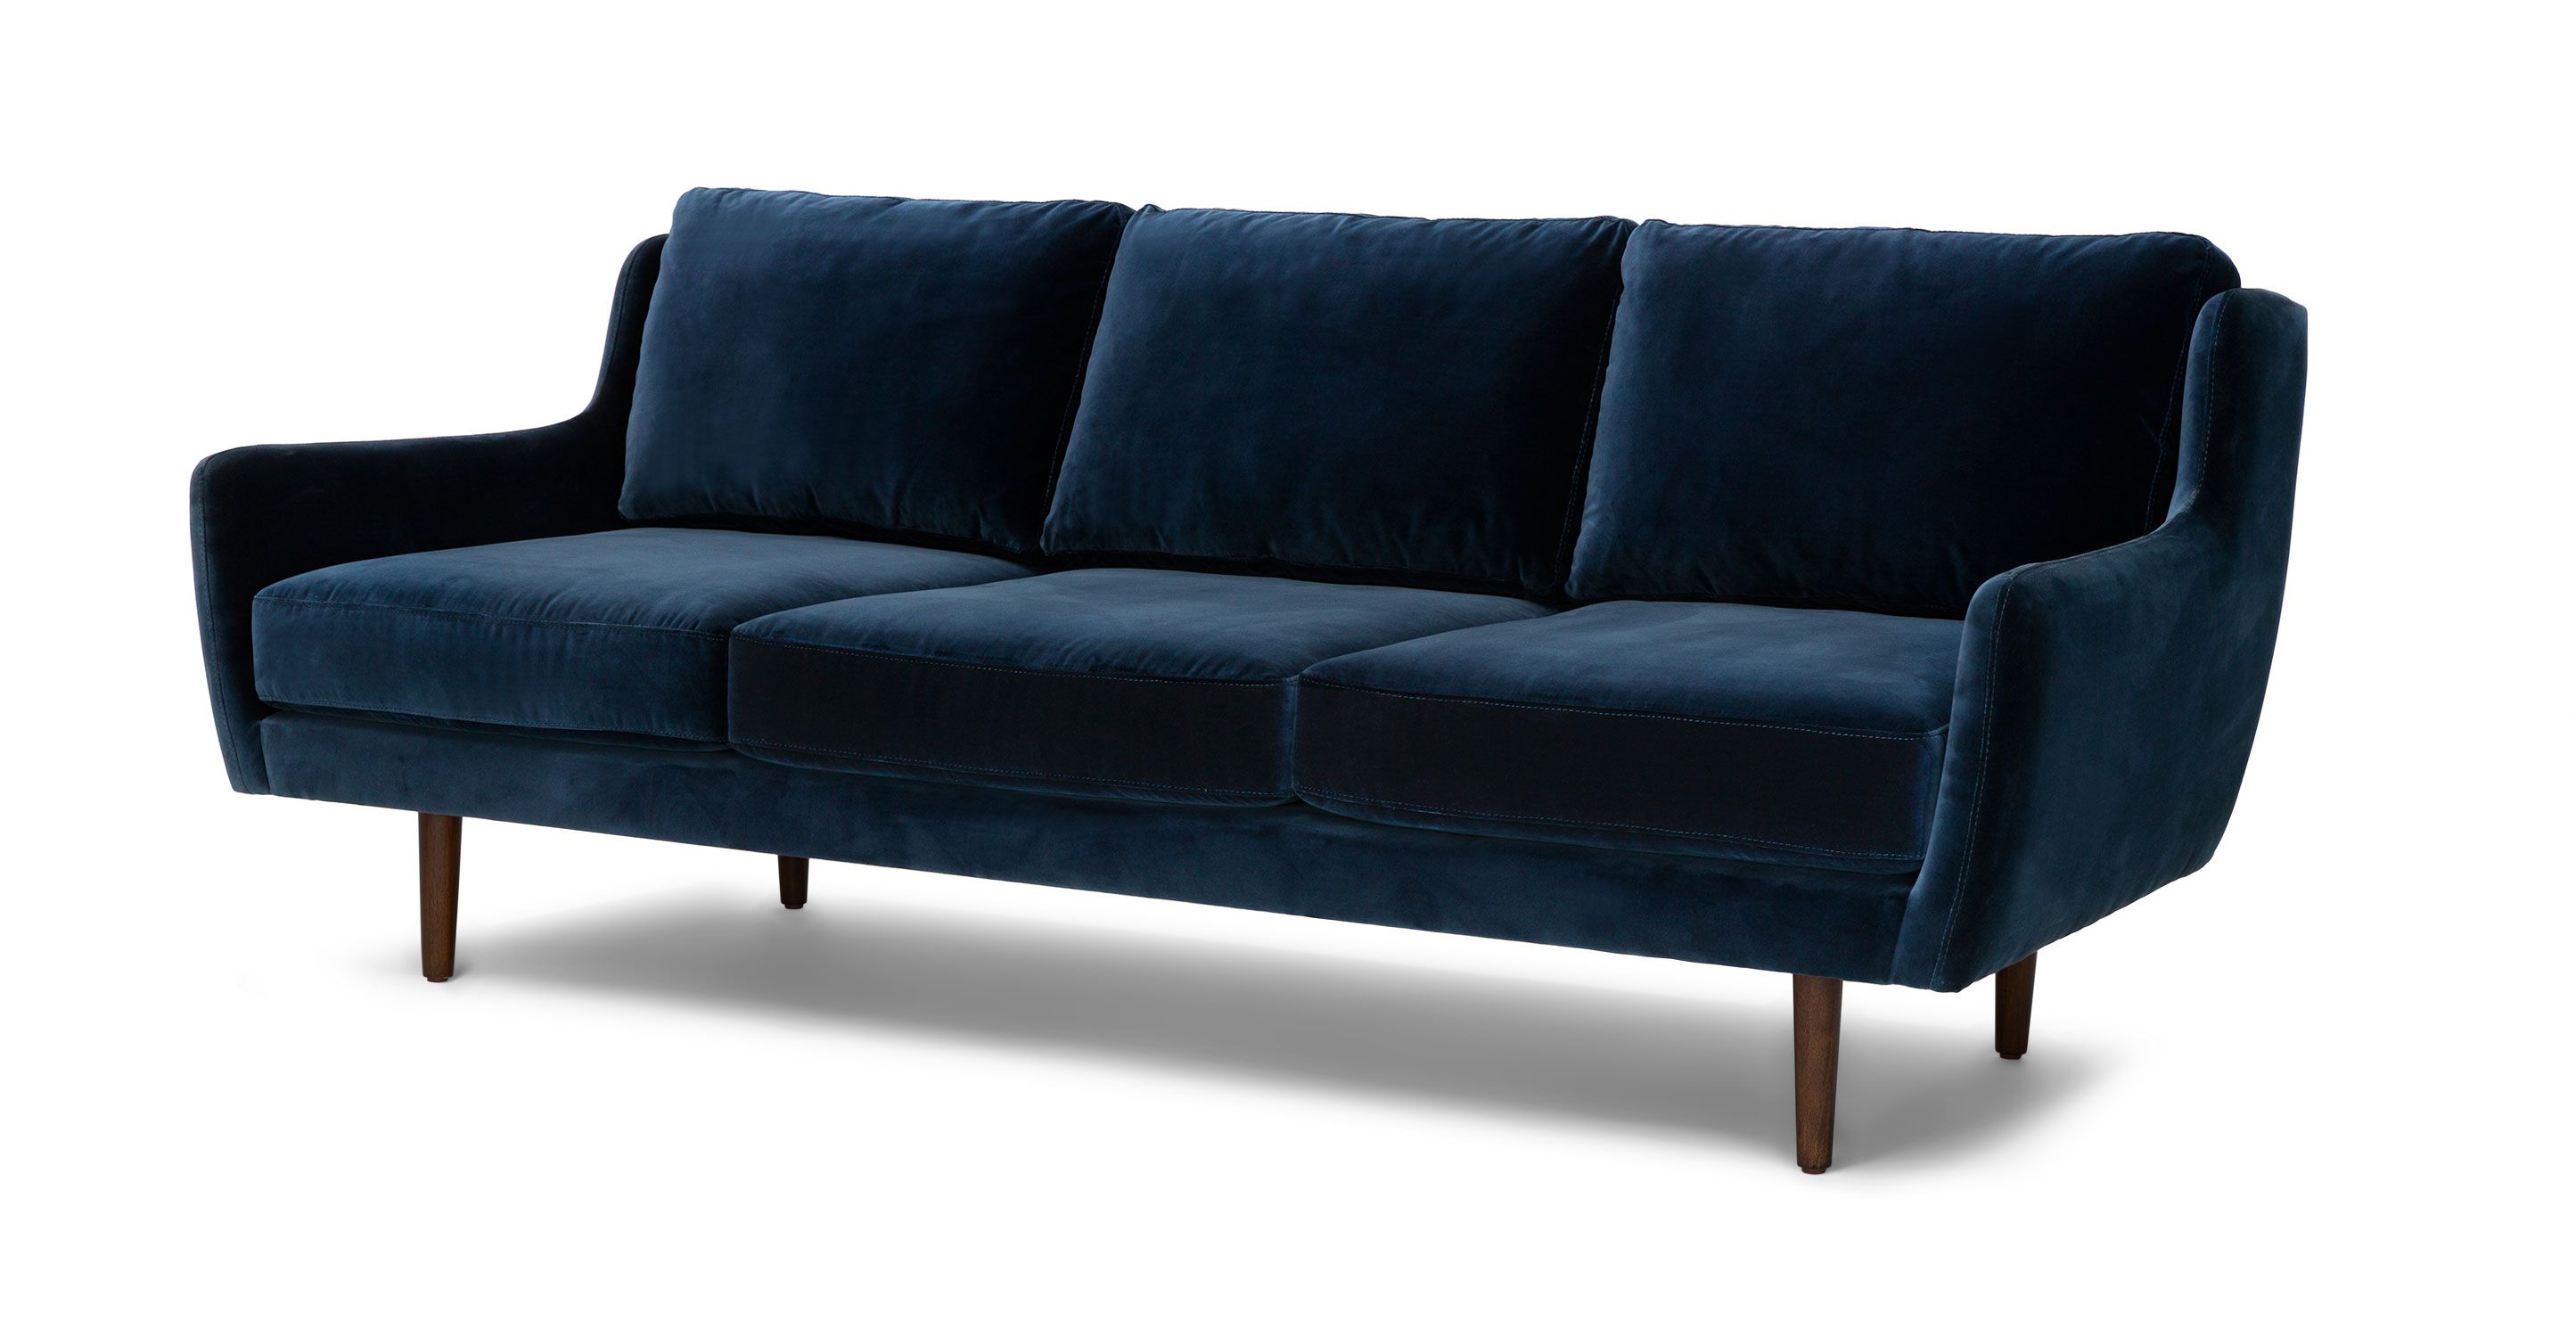 Modern Furniture Upholstery blue velvet contemporary sofa | matrix contemporary furniture